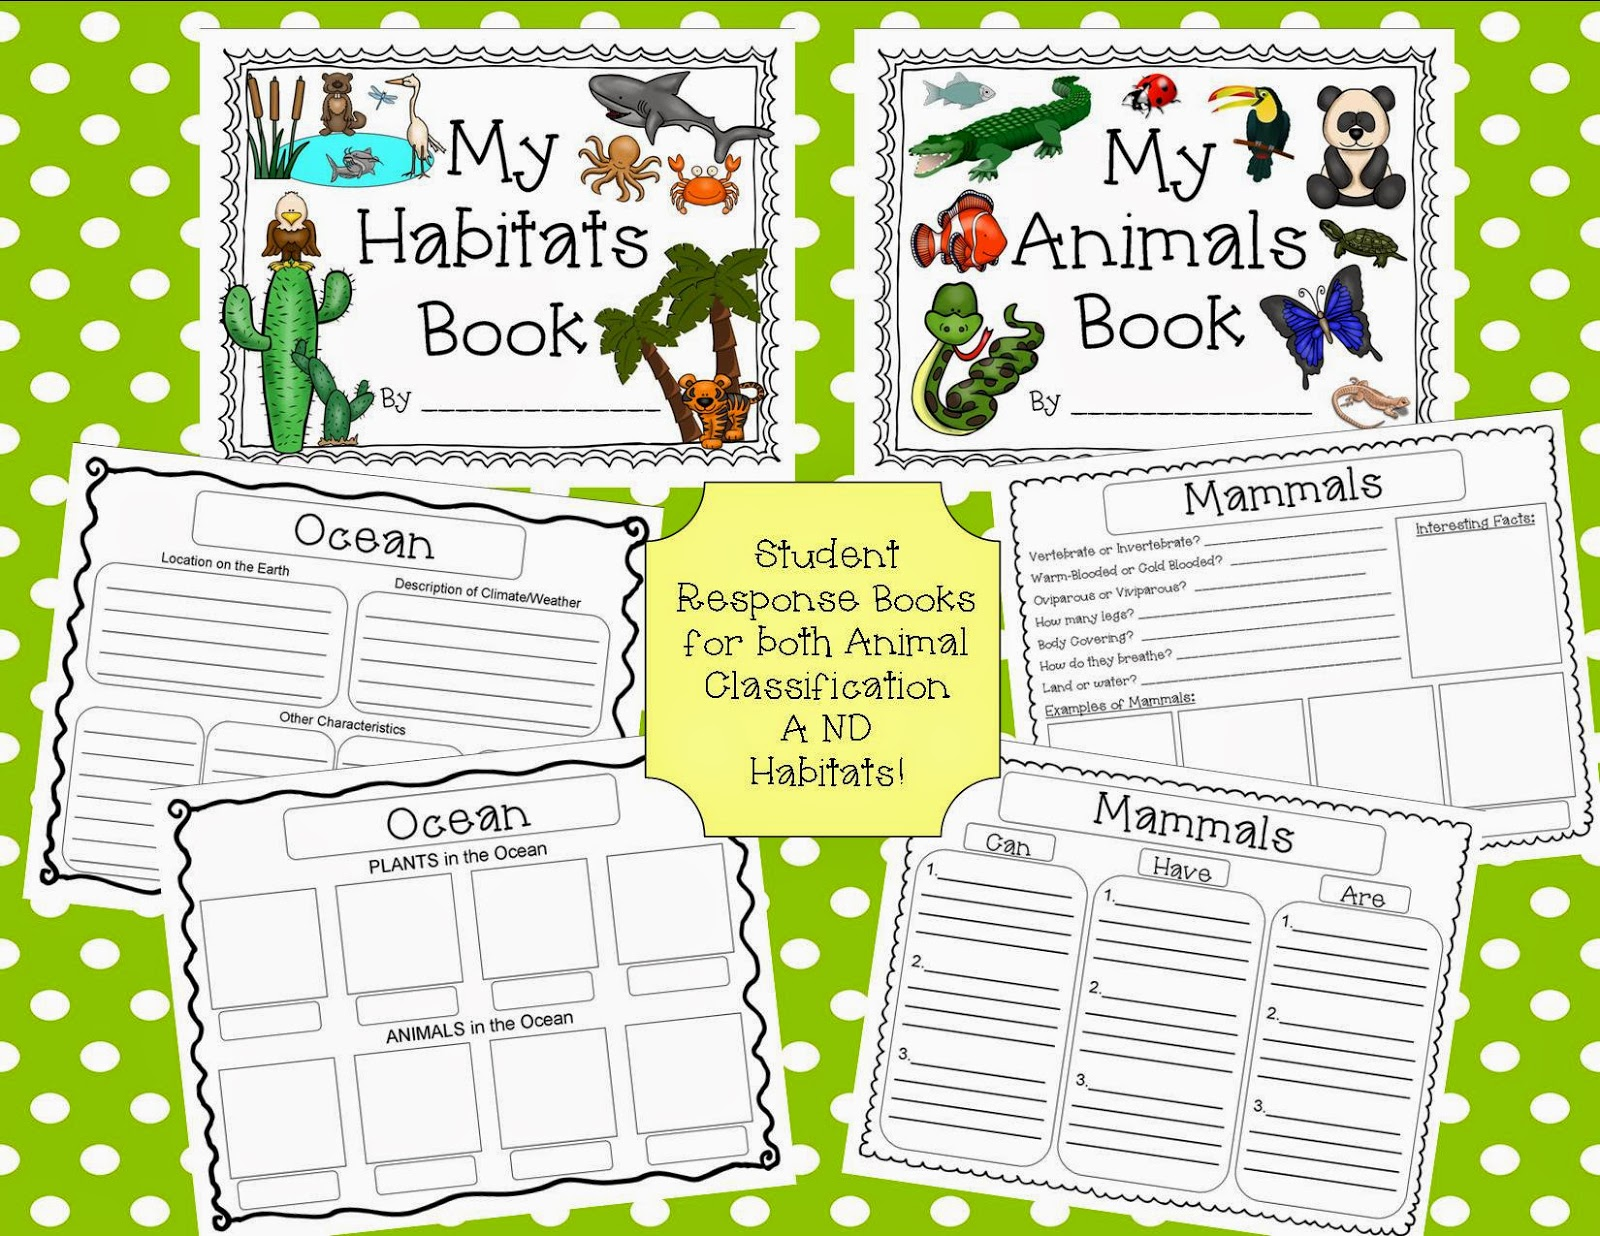 worksheet Habitats Of Animals For Kids Worksheet simply sweet teaching animal classification and habitats unit group student response booklets